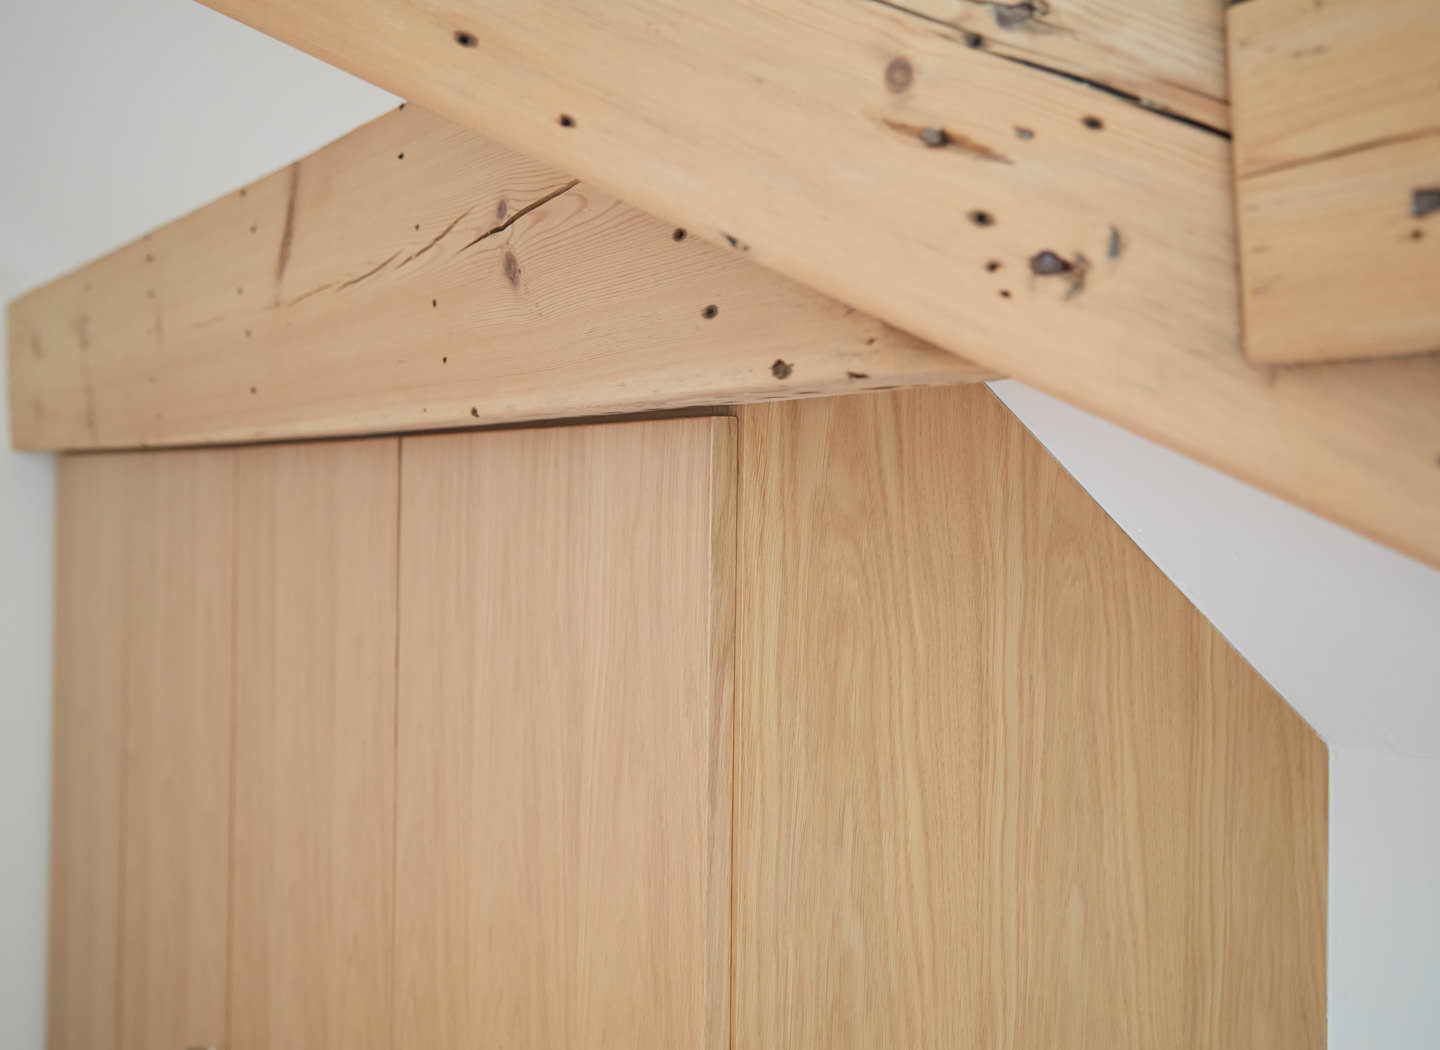 Case study showing fitted wardrobe in loft conversion